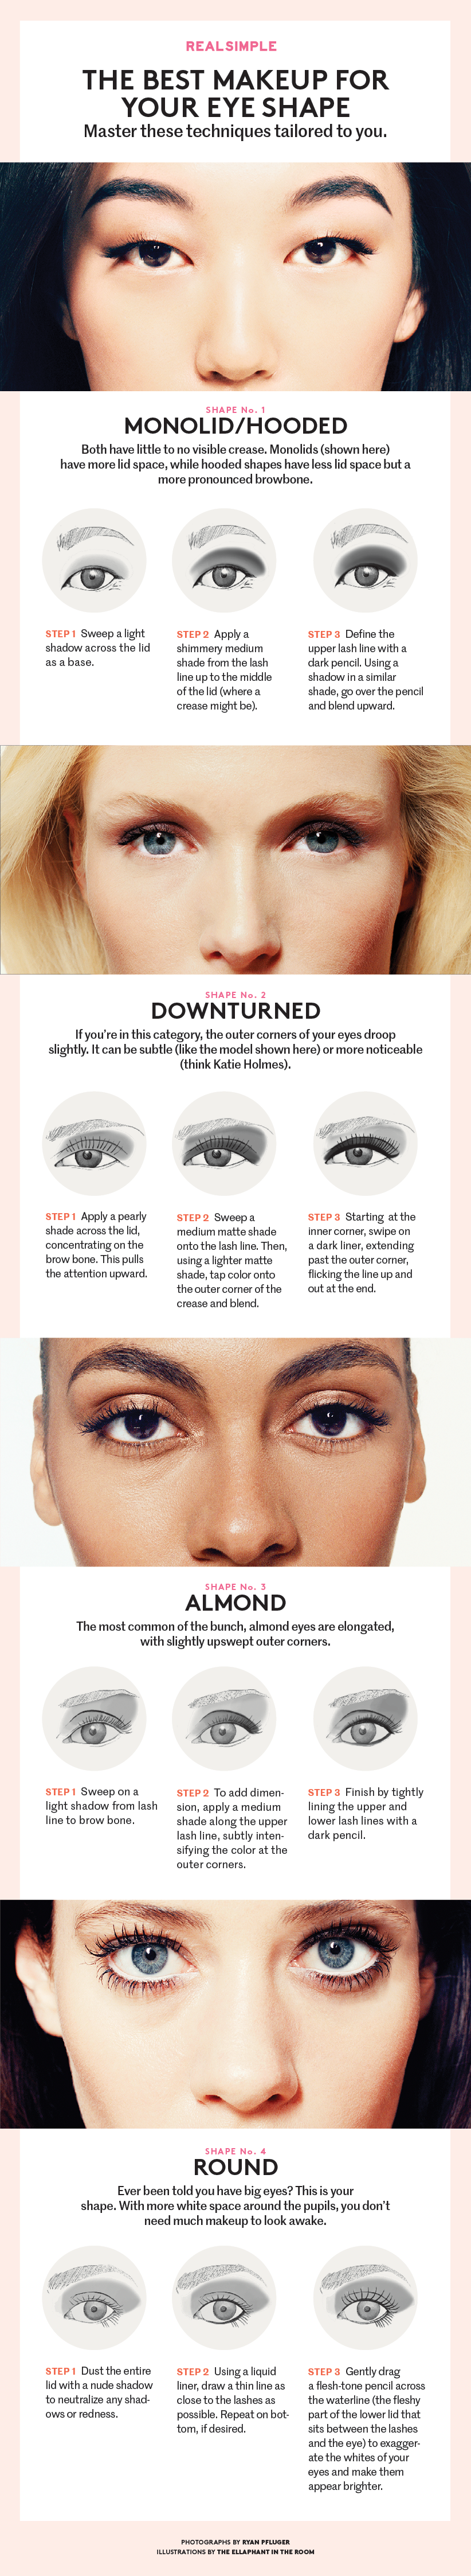 here's the best eye makeup for your eye shape | eye shapes, eye